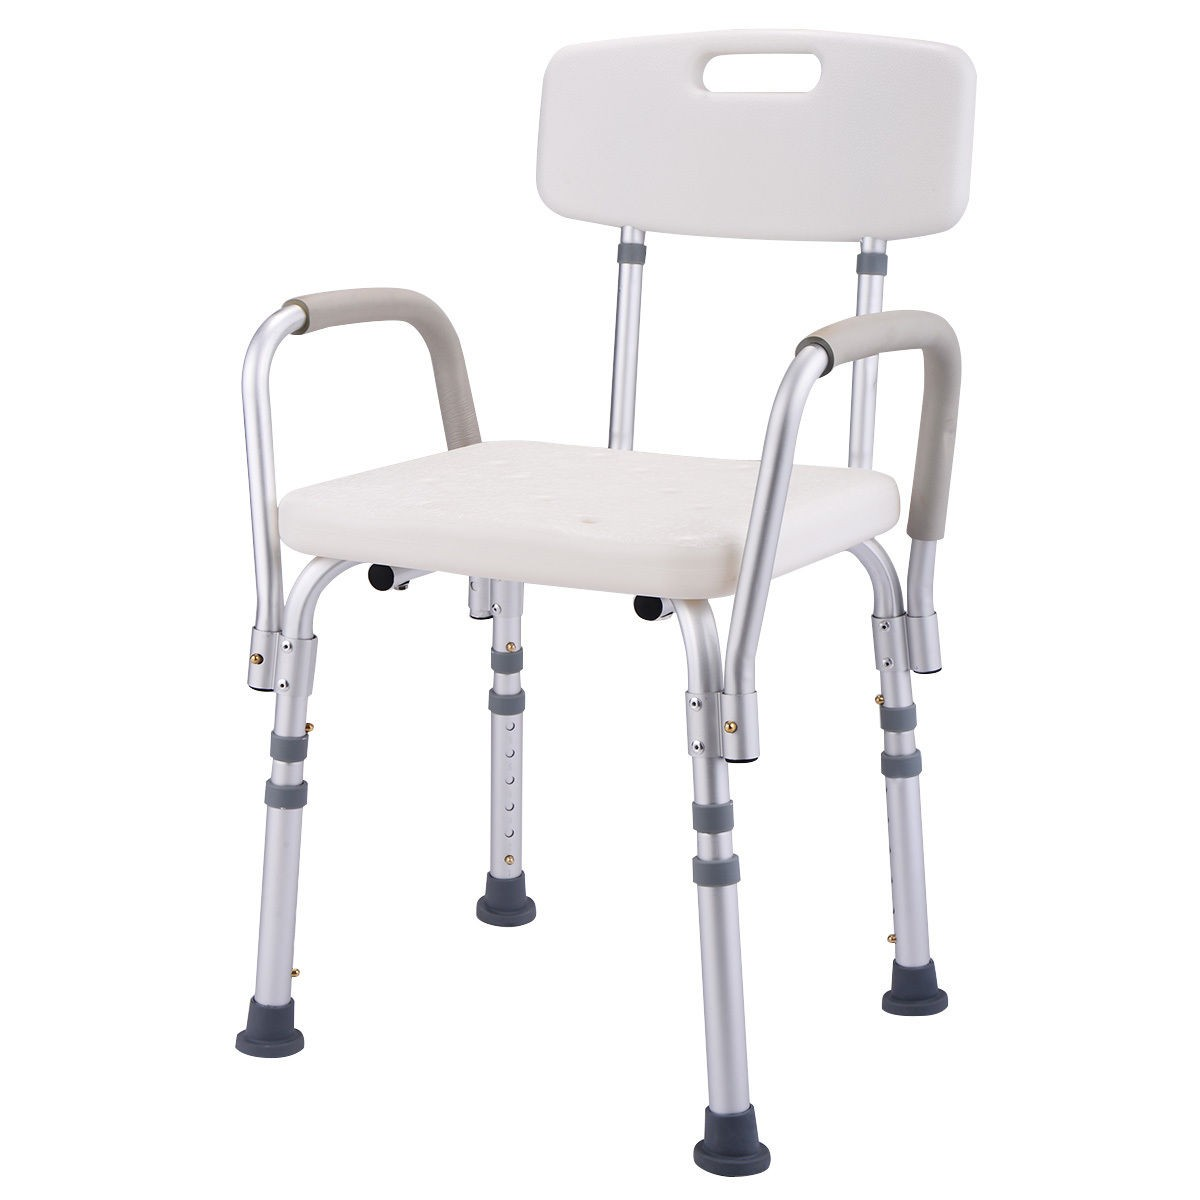 6 height adjustable medical shower chair stool - Creative Home Care ...